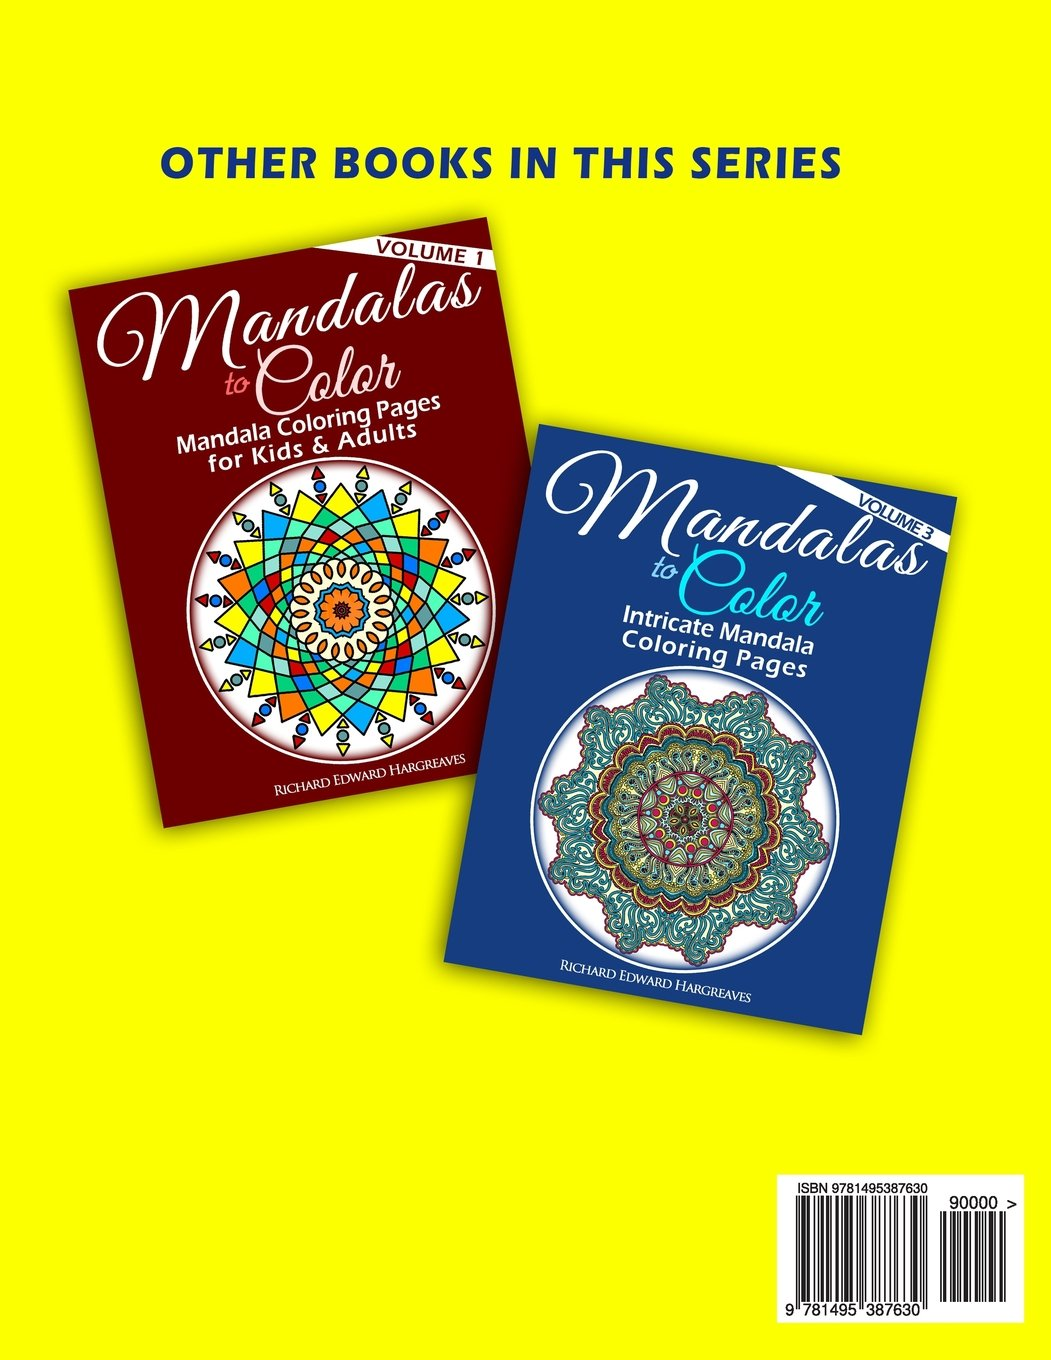 Mandala coloring pages amazon - Amazon Com Mandalas To Color Mandala Coloring Pages For Adults Mandala Coloring Books Volume 2 9781495387630 Mr Richard Edward Hargreaves Books